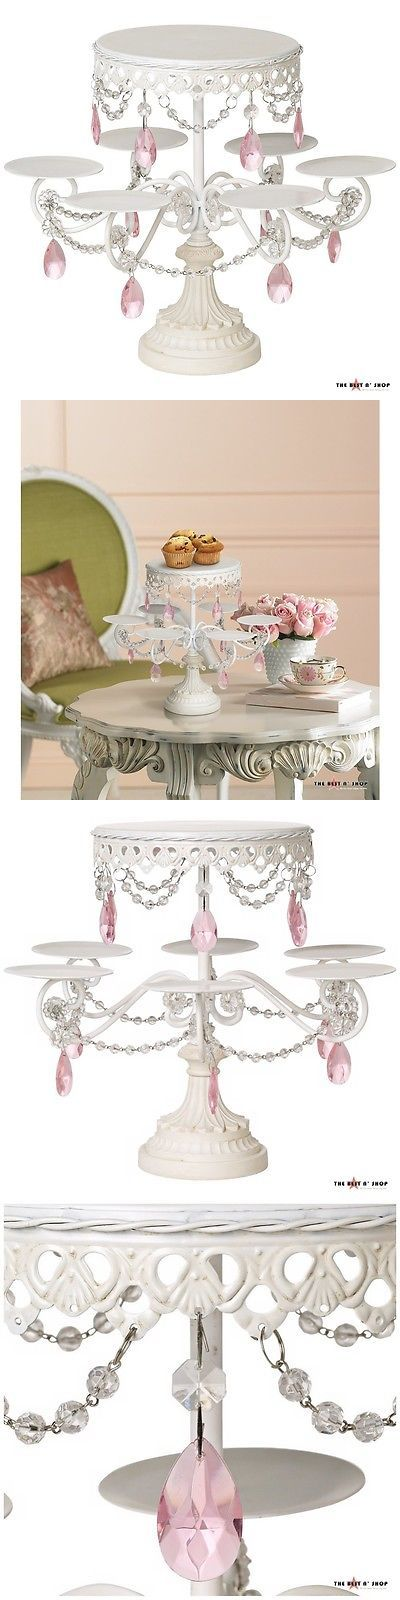 Wedding Cake Stands and Plates 102424: 2 Tier Cake Stand Crystal Pink Clear Beaded 6 Tray Cupcake Wedding Party Display -> BUY IT NOW ONLY: $69.99 on eBay!